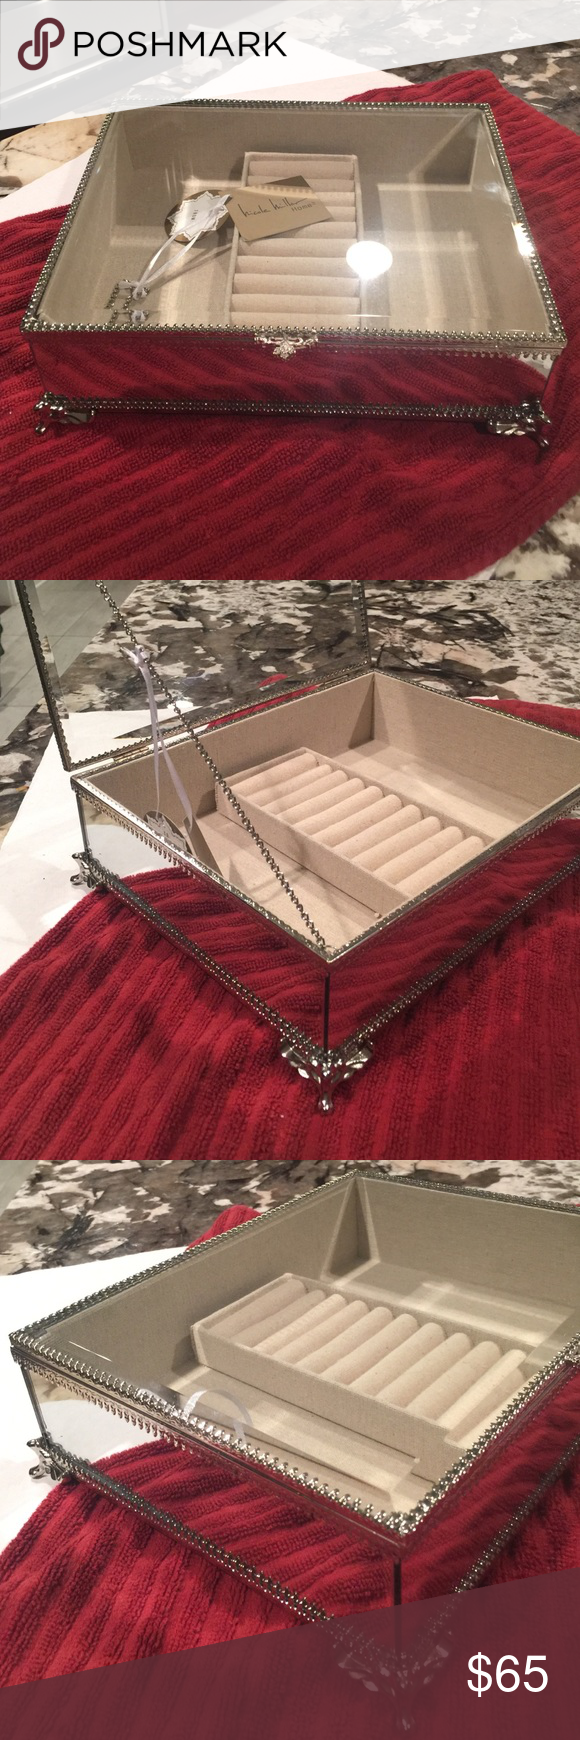 Nicole Miller Jewelry Box Inspiration Nwt Nicole Miller Mirrorglass Jewelry Box Mirrored Sides Glass Top Design Ideas